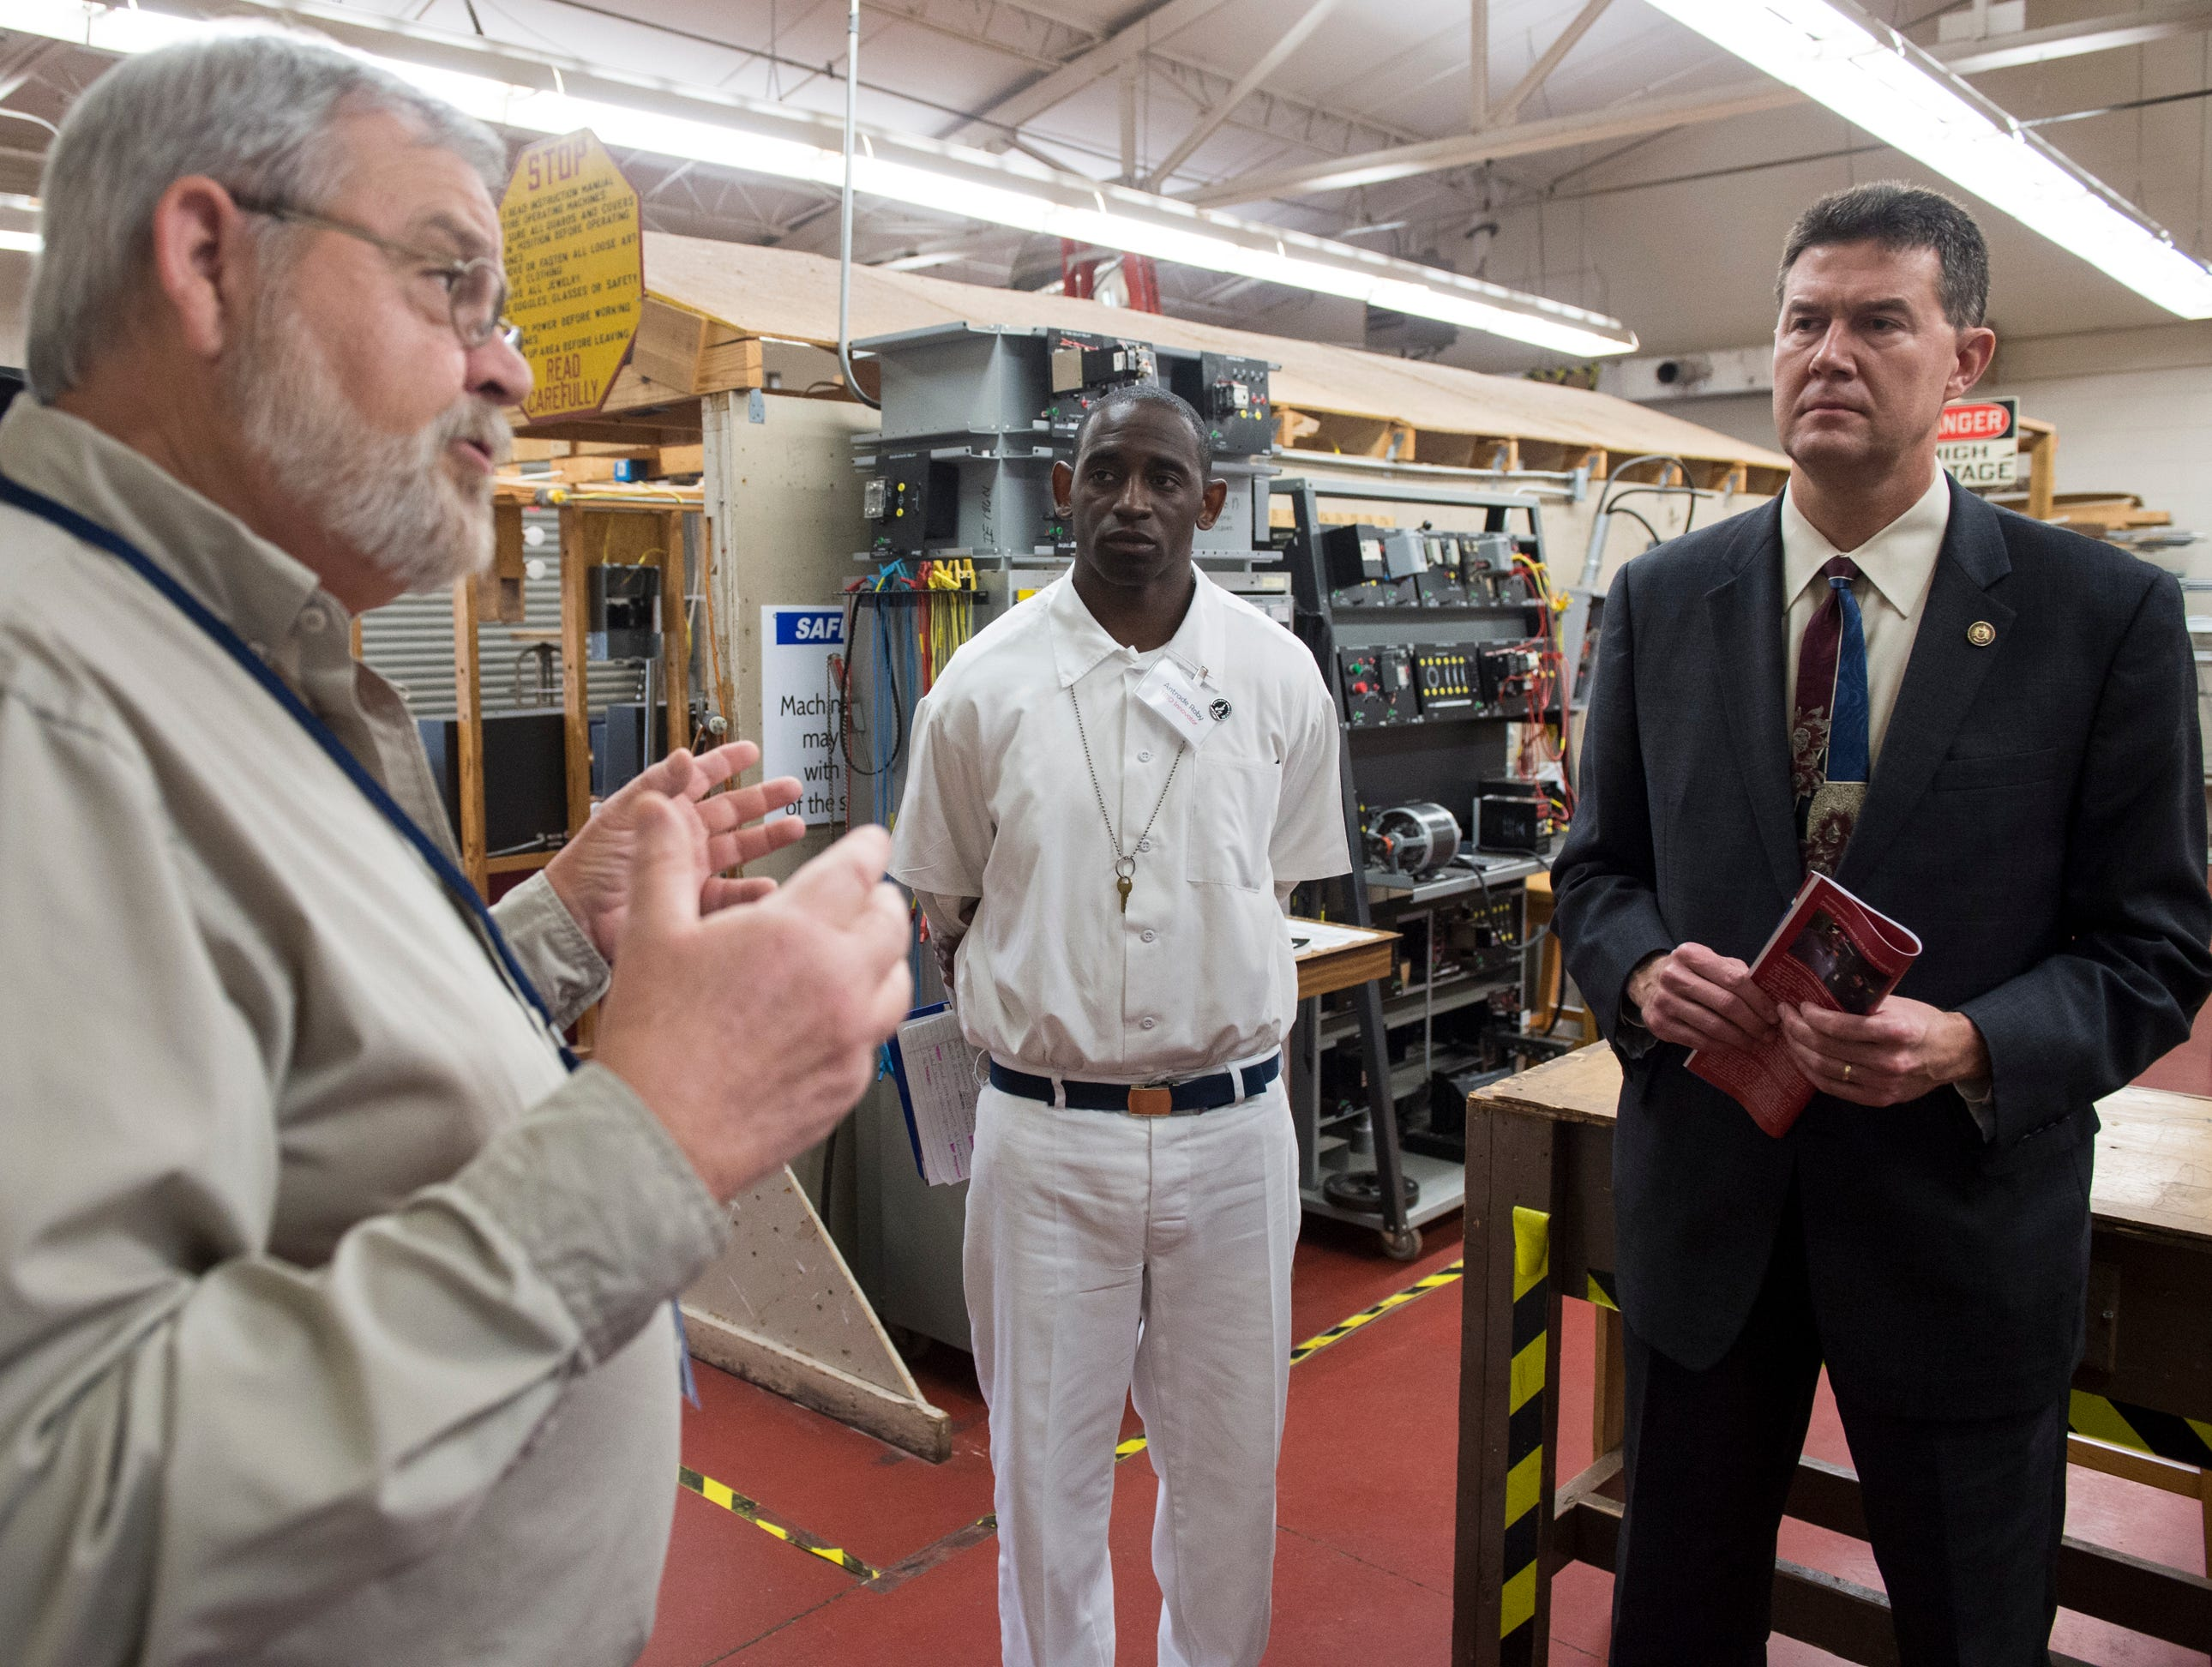 Instructor Donald Huskey, left, speaks to Alabama Secretary of State John Merrill during a tour at the Ingram State Technical College Draper instructional service center in Elmore, Ala., on Thursday, Feb. 21, 2019.